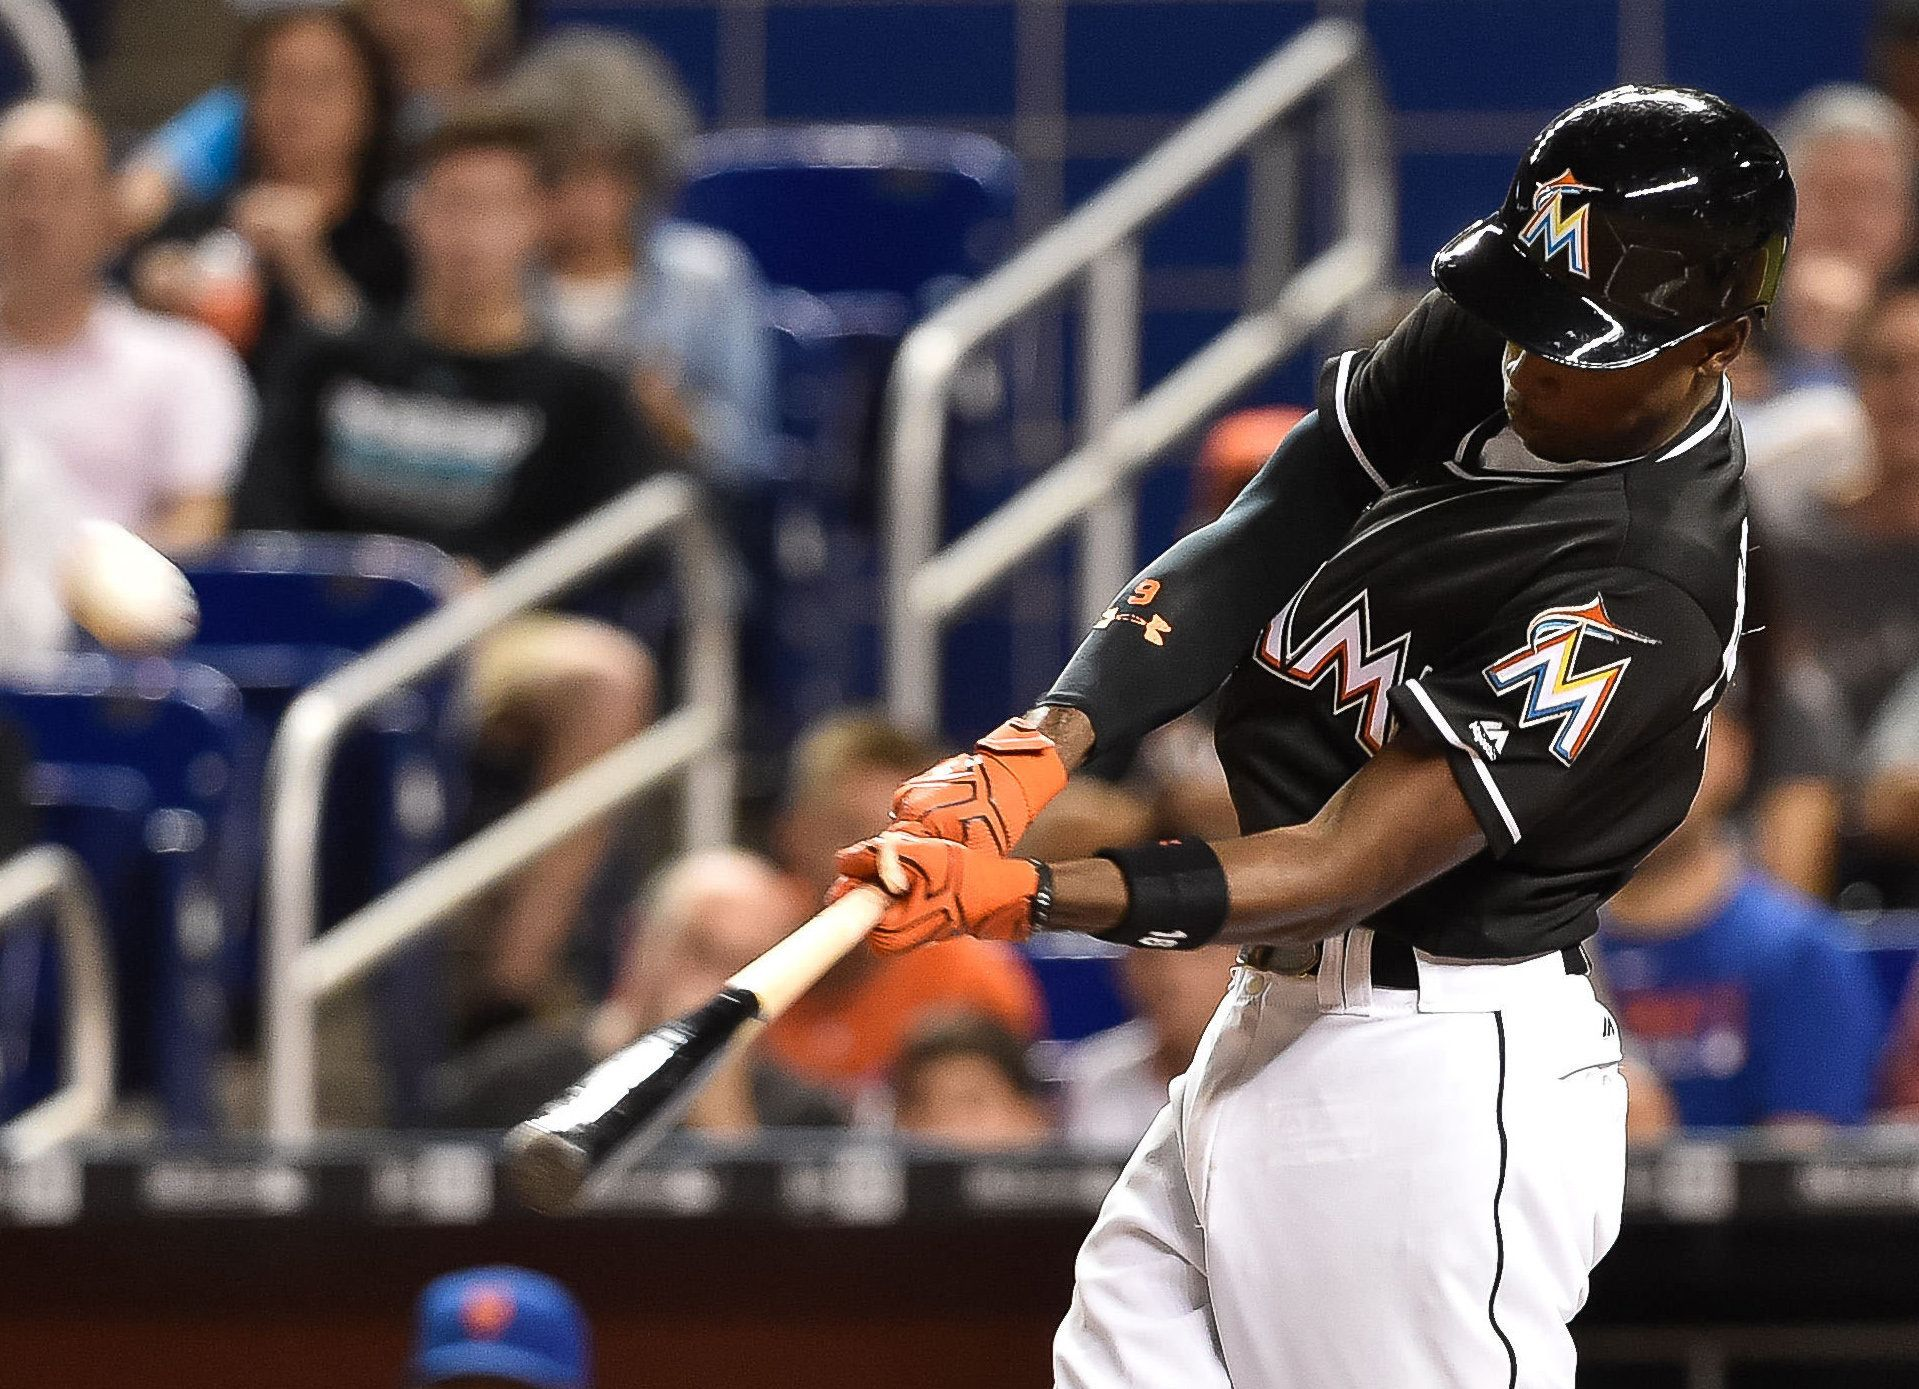 Sep 26, 2016; Miami, FL, USA; Miami Marlins second baseman Dee Gordon connects for a solo home run during the first inning against the New York Mets at Marlins Park. Mandatory Credit: Steve Mitchell-USA TODAY Sports